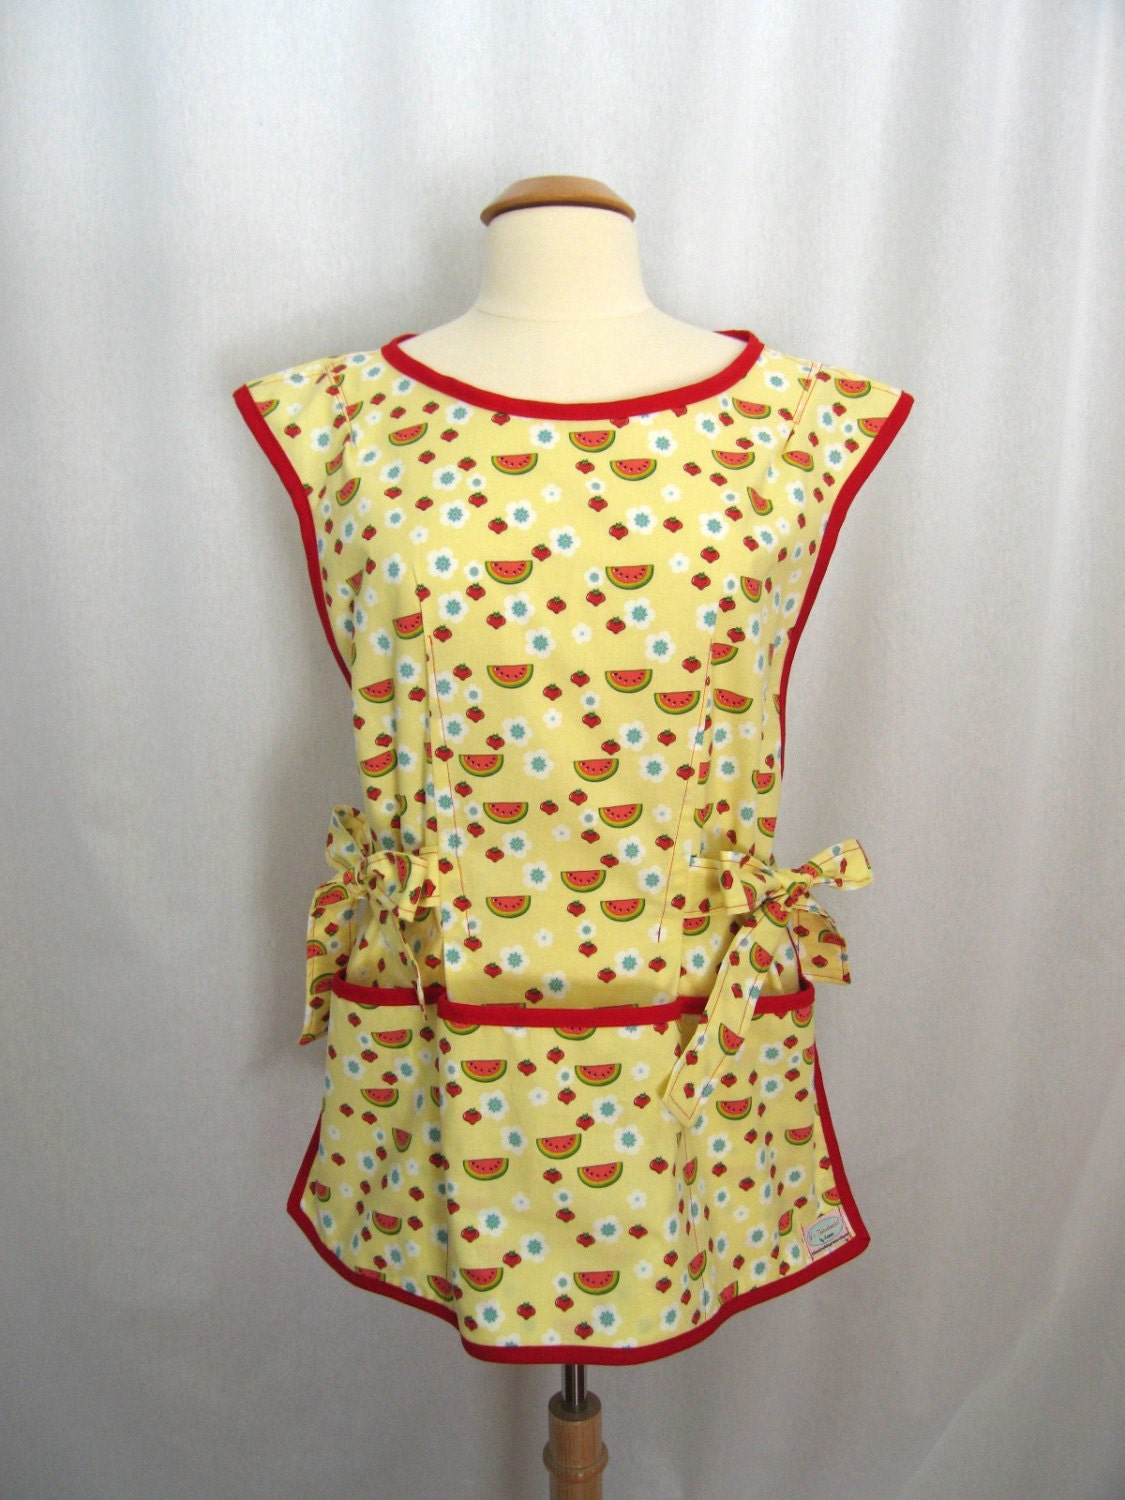 Yellow Cobbler Apron Smock Apron Over The Head Apron With